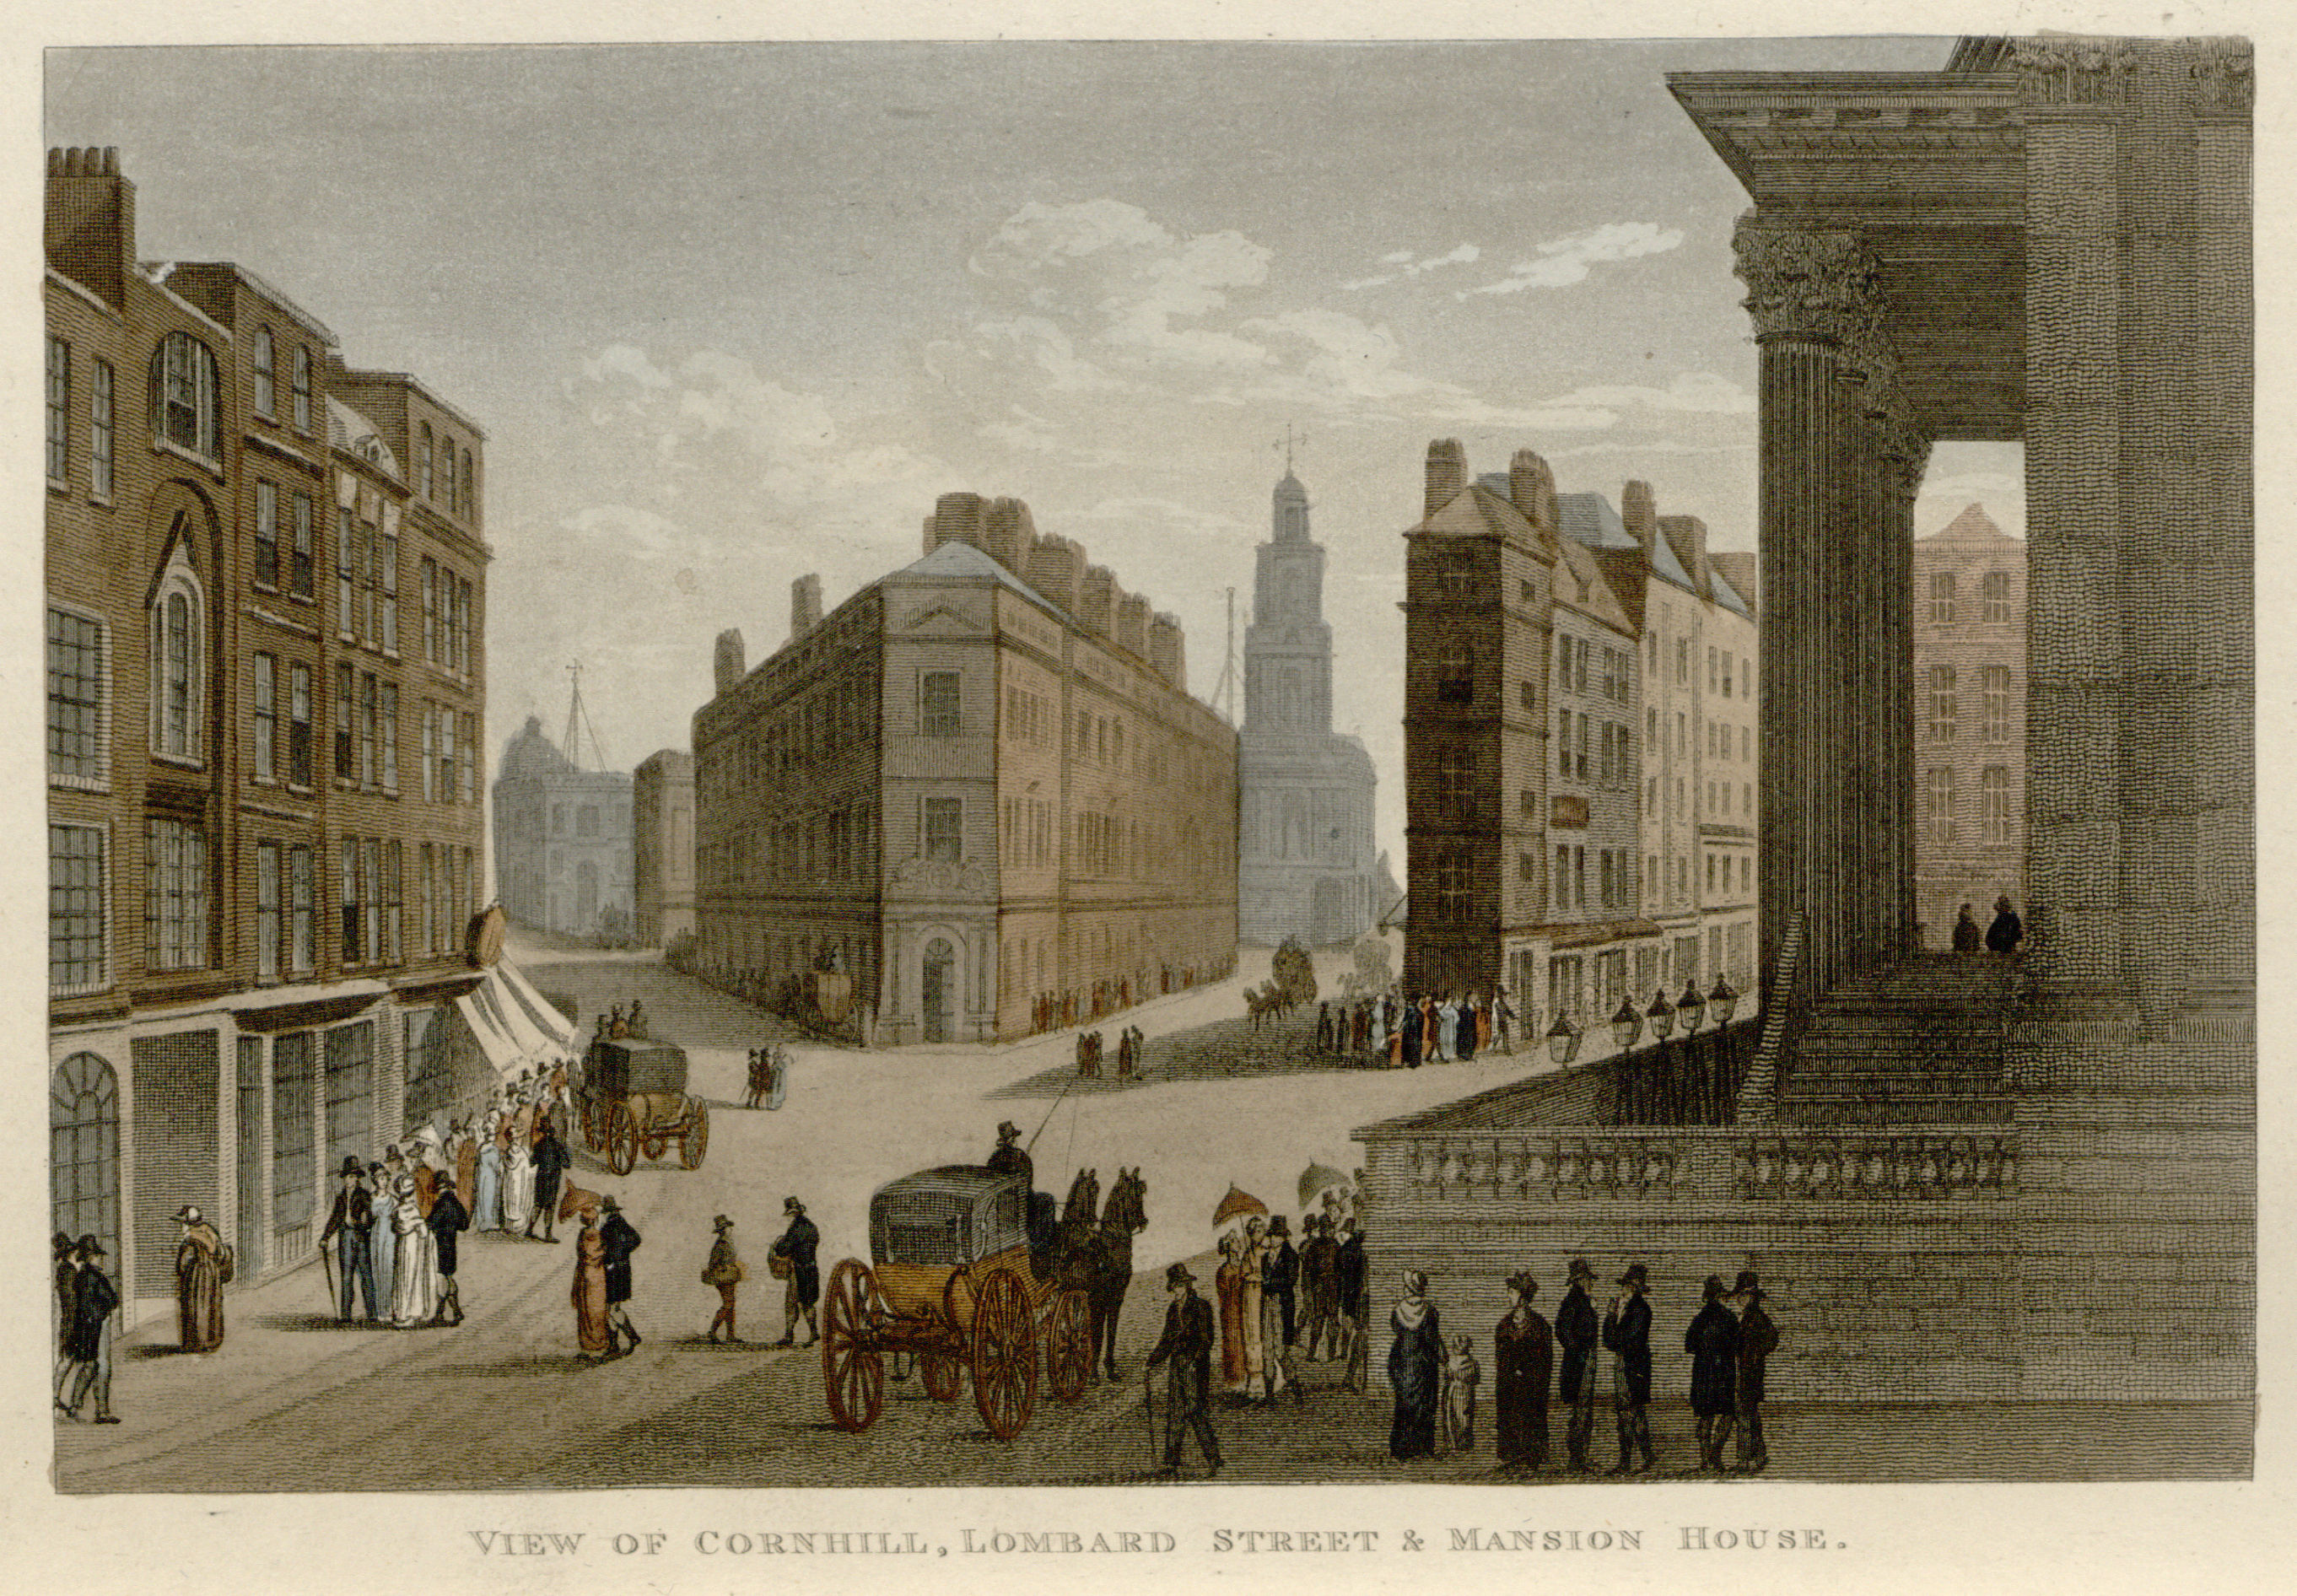 50 - Papworth - View of Cornhill, Lombard Street & Mansion House